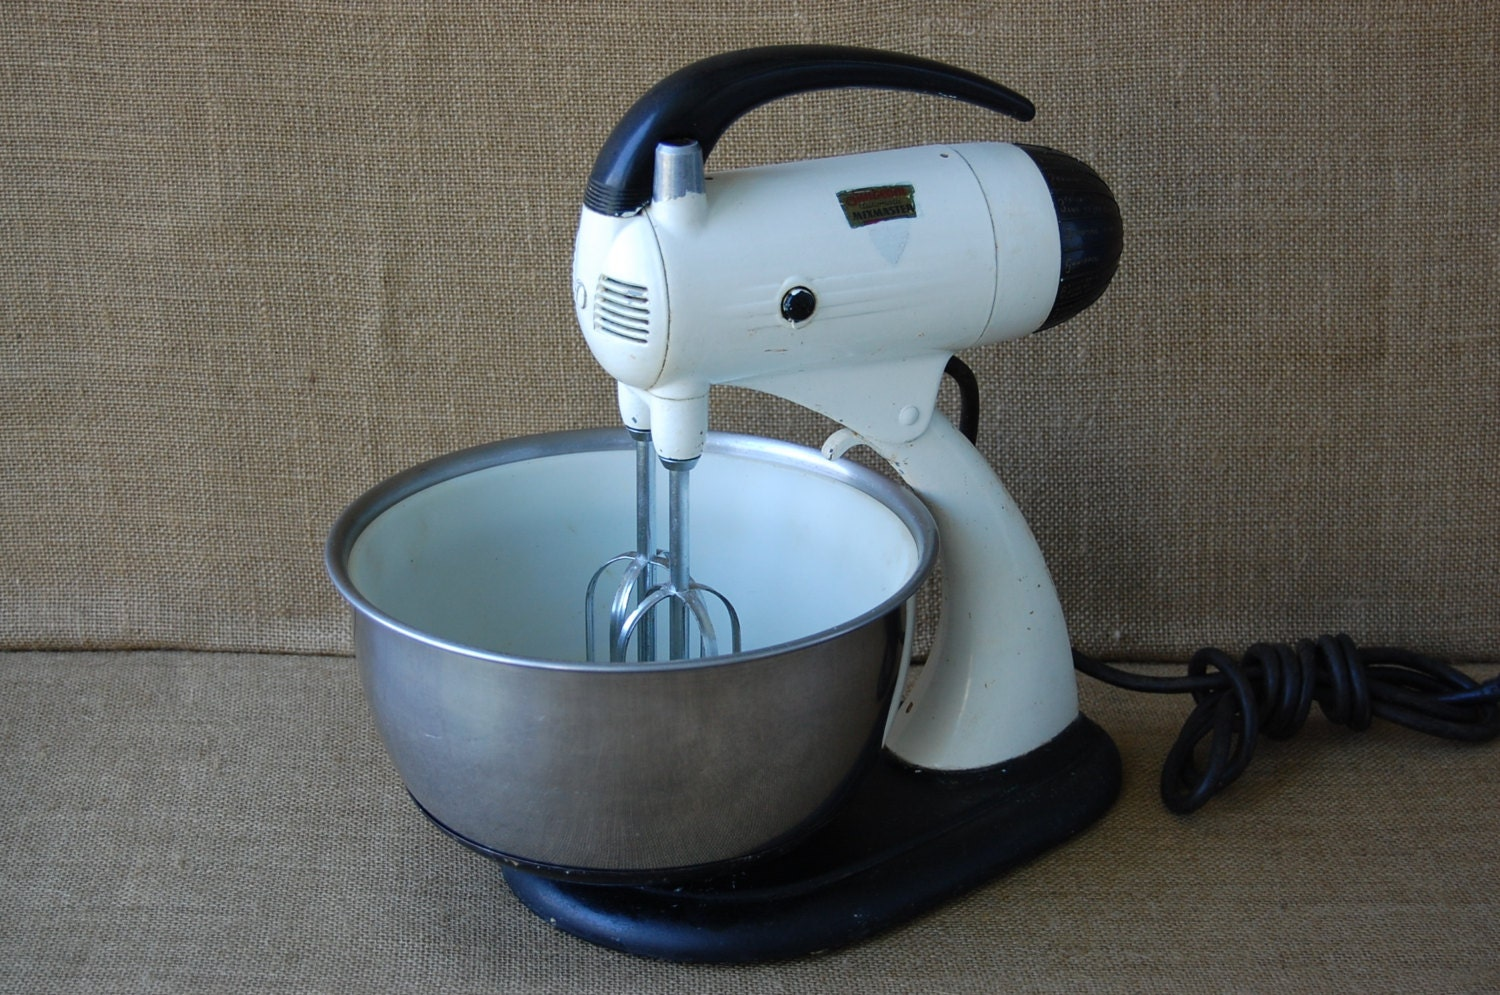 Vintage Sunbeam 10 Speed Mixer With Stainless Steel Bowl Circa